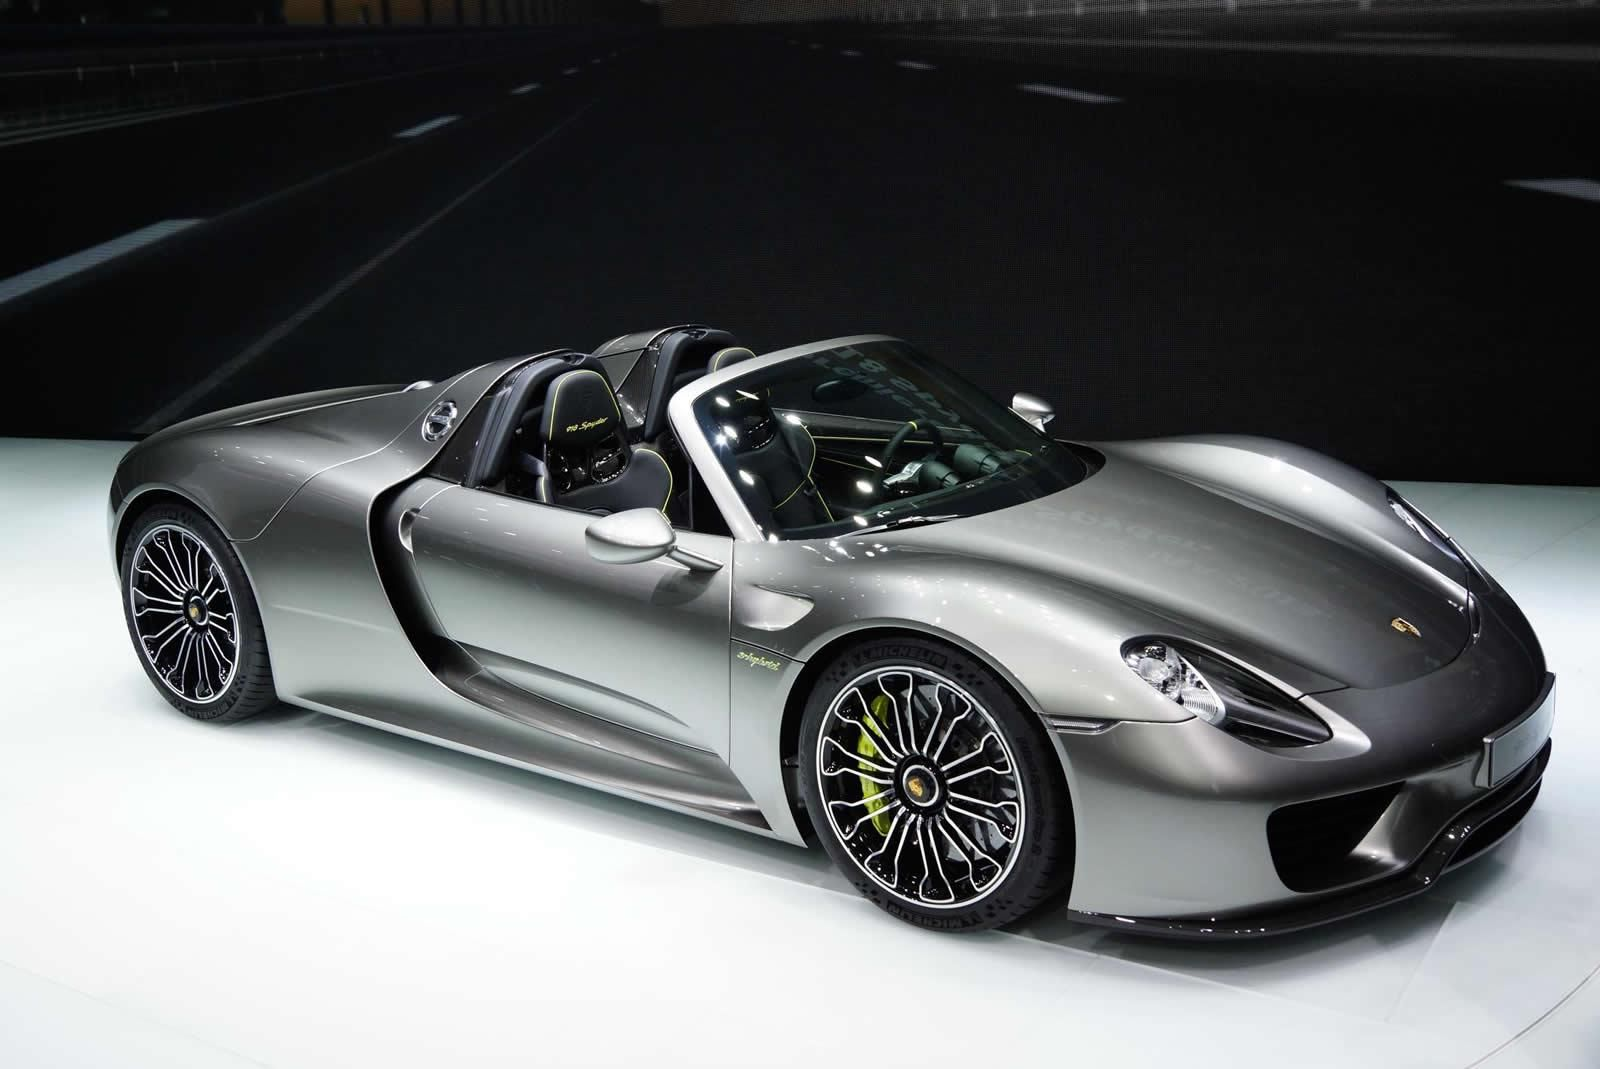 porsche 918 spyder white and red. 2015 porsche 918 spyder hybrid supercar with a total of in seconds white and red